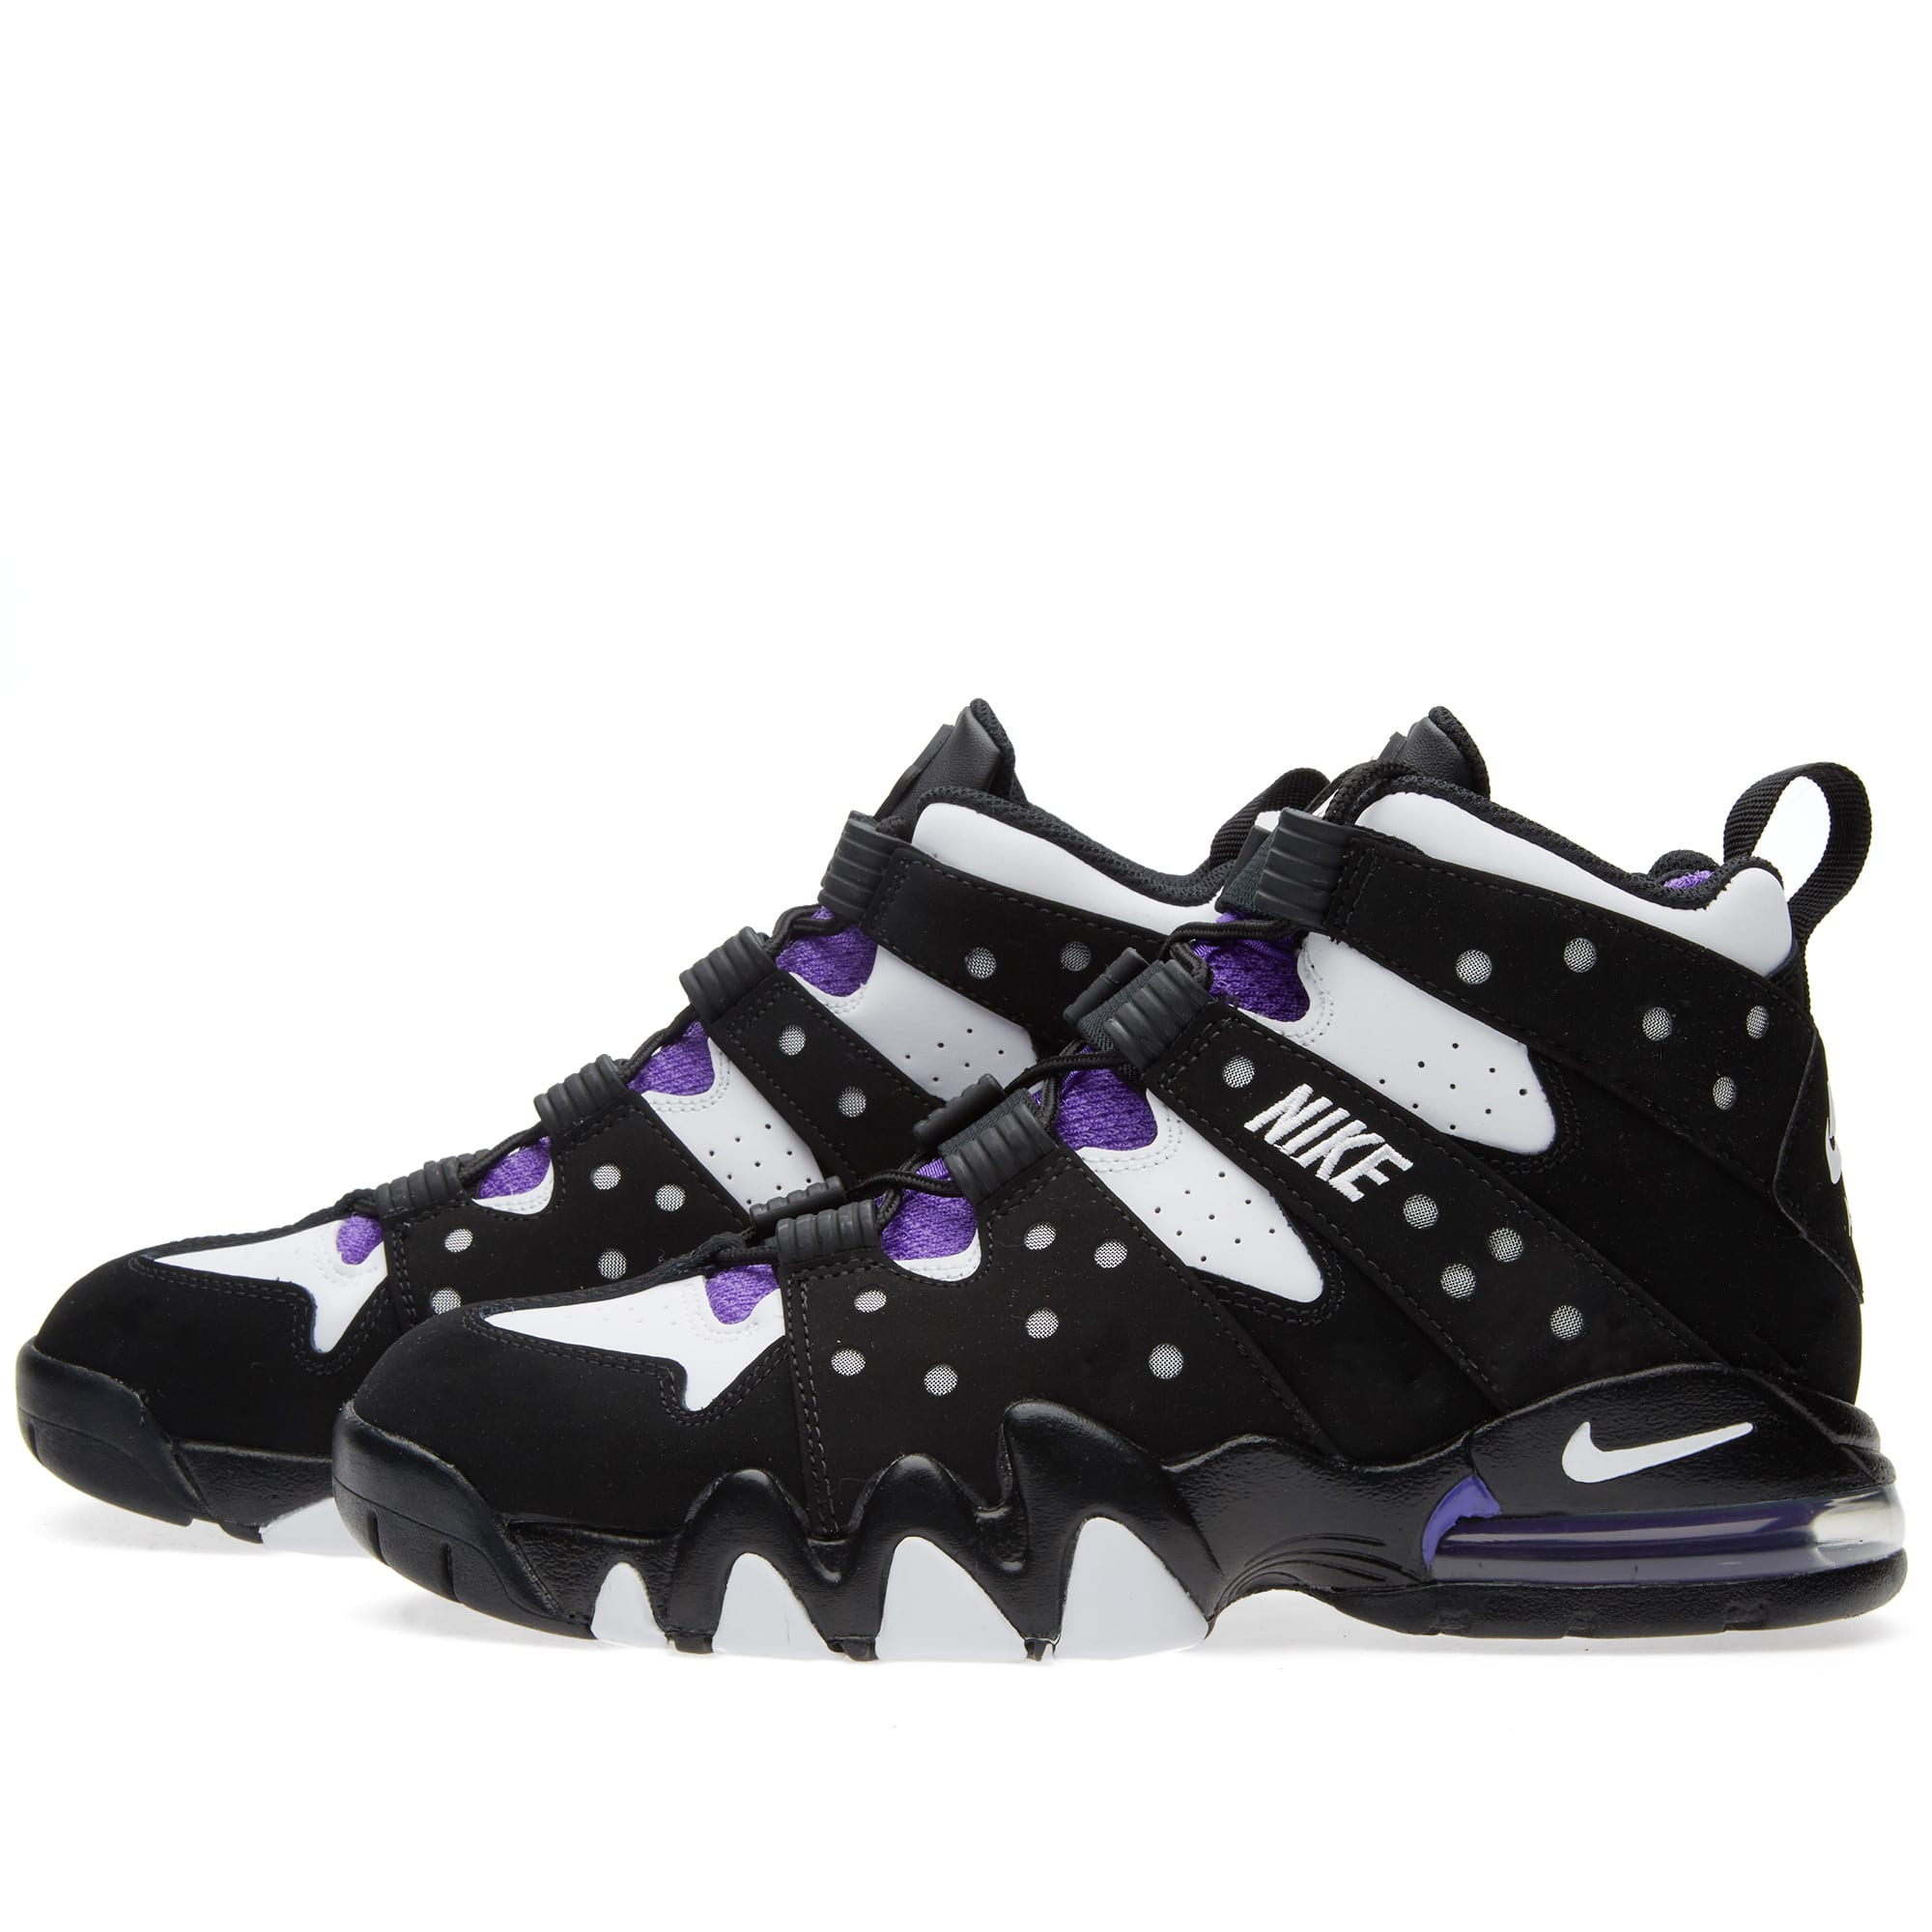 Charles Barkley's Nike Air Max2 CB '94 Is Coming Back Next